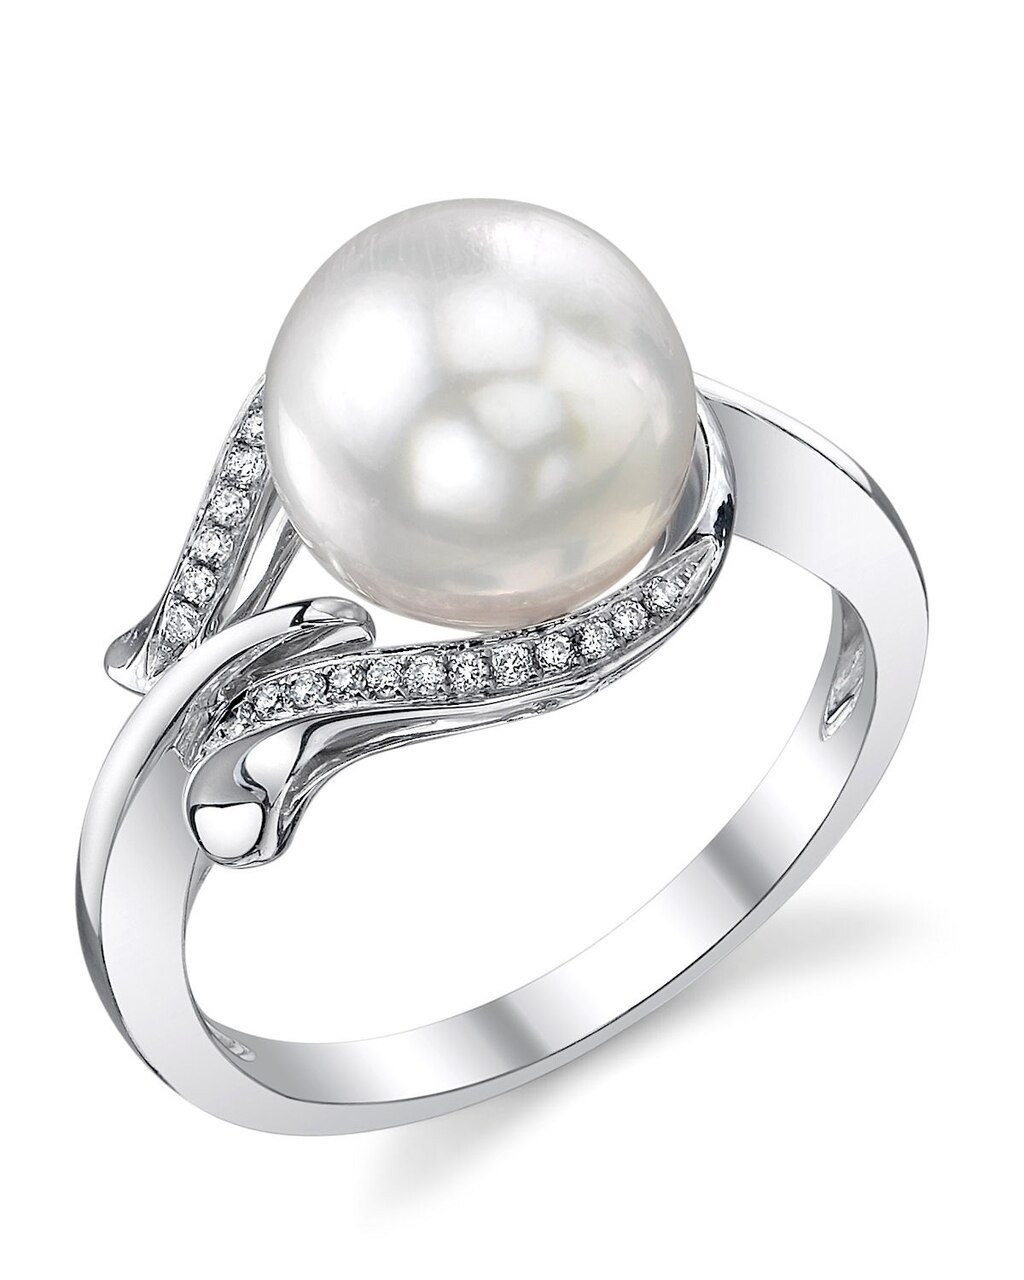 This exquisite ring features an 8.5-9.0mm Japanese Akoya pearl, handpicked for its luminous luster